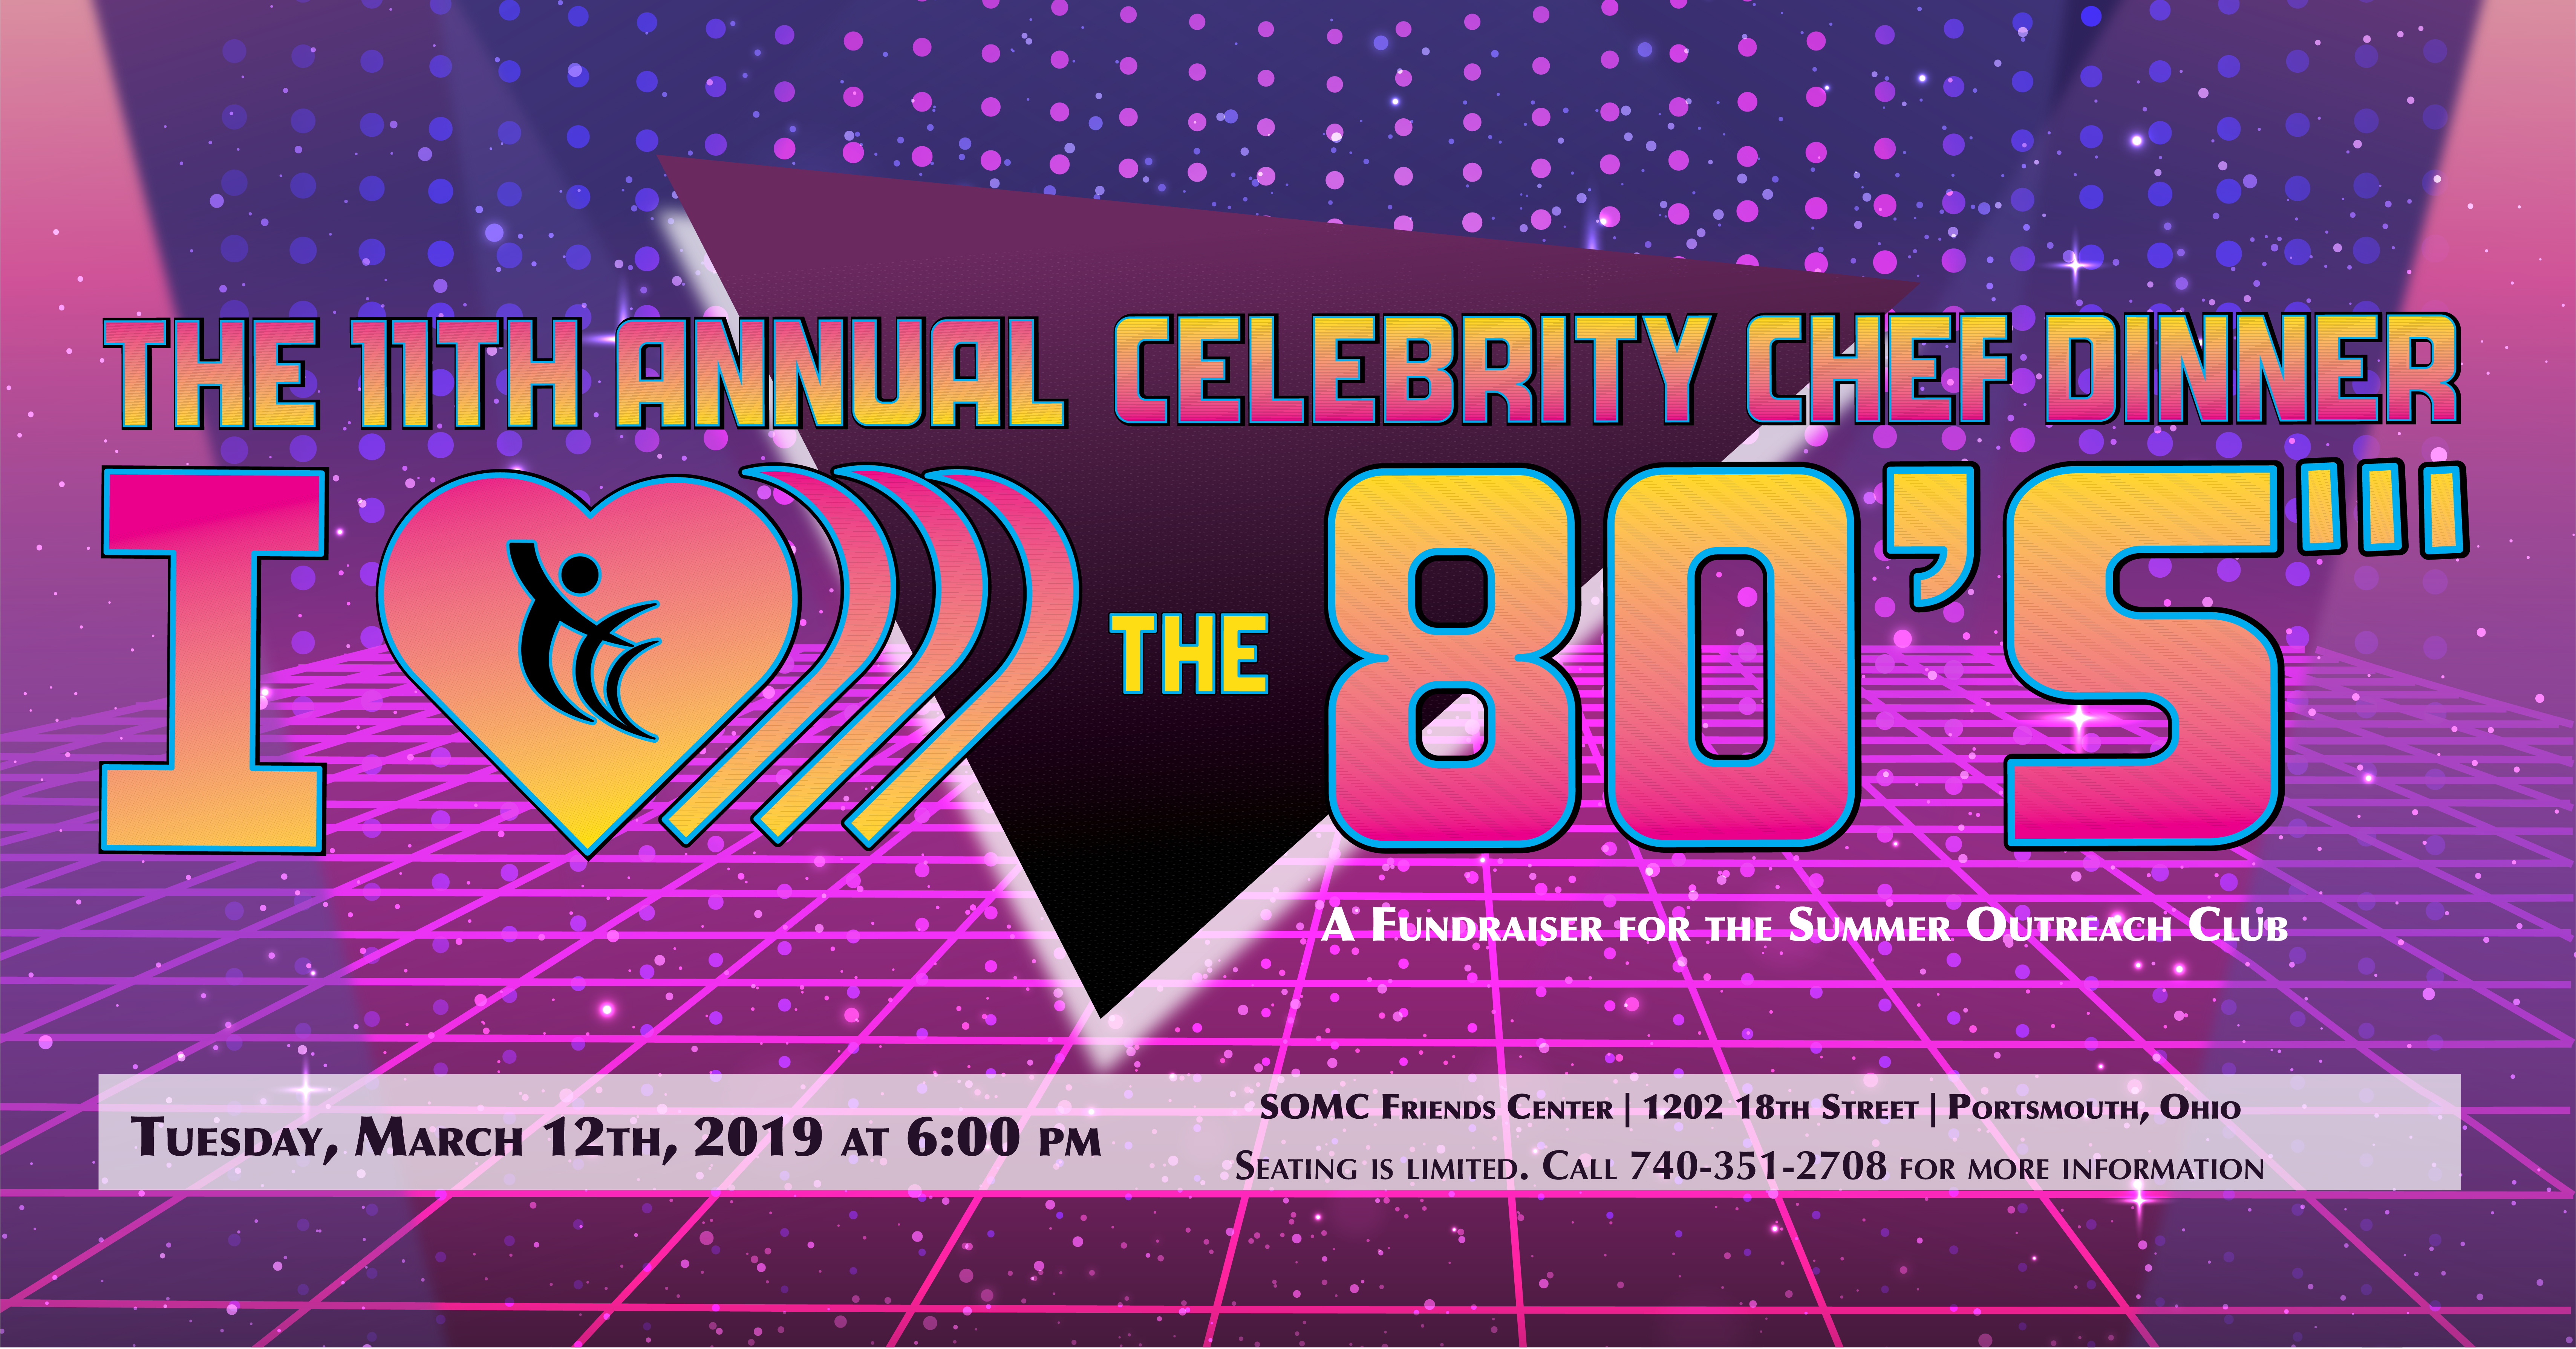 The 11th Annual Celebrity Chef Dinner